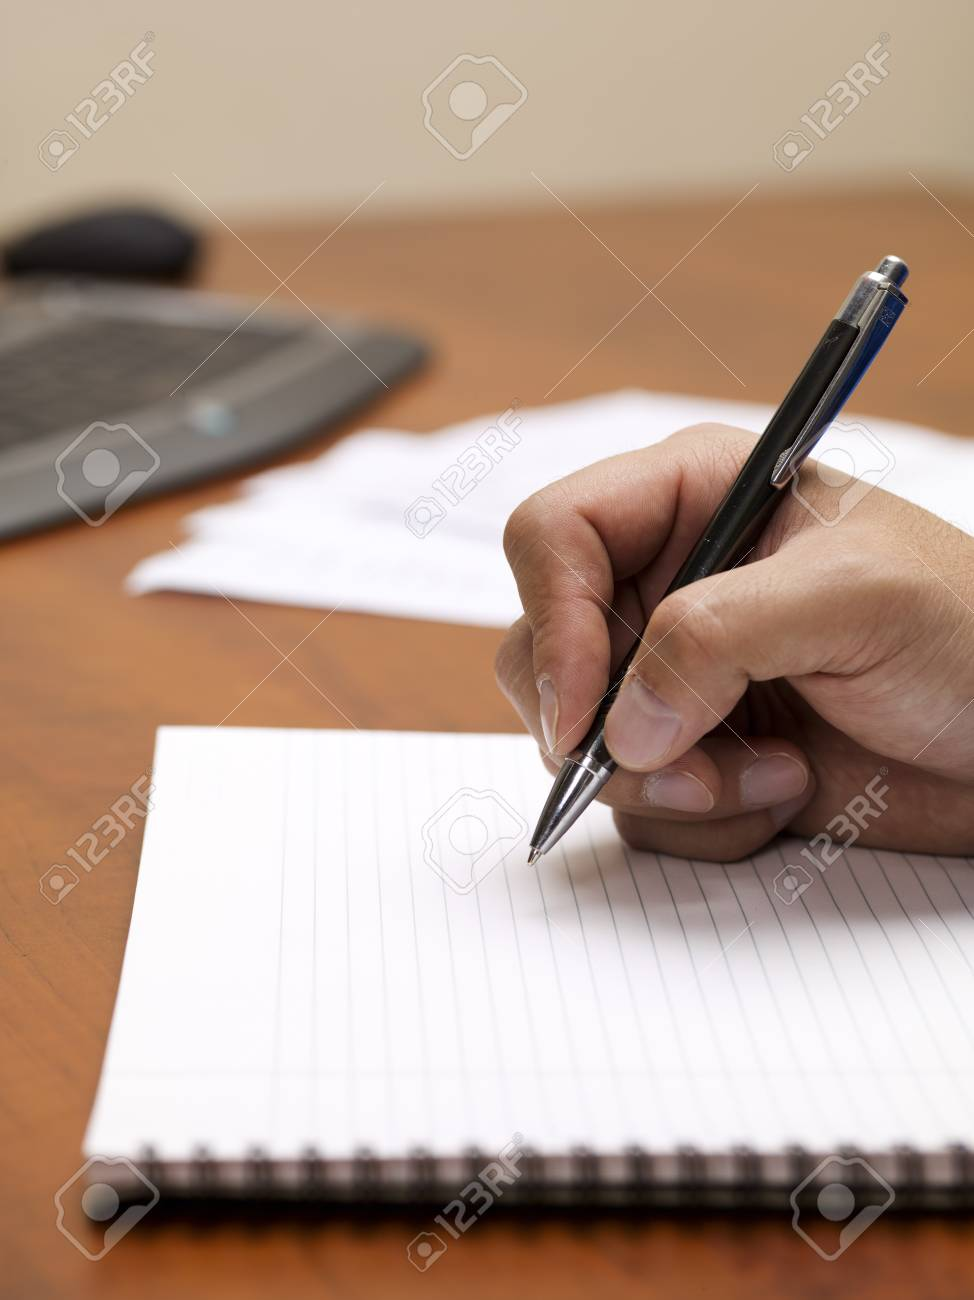 Close-up image of human hand writing on spiral writing pad on wooden desk. Stock Photo - 17496225